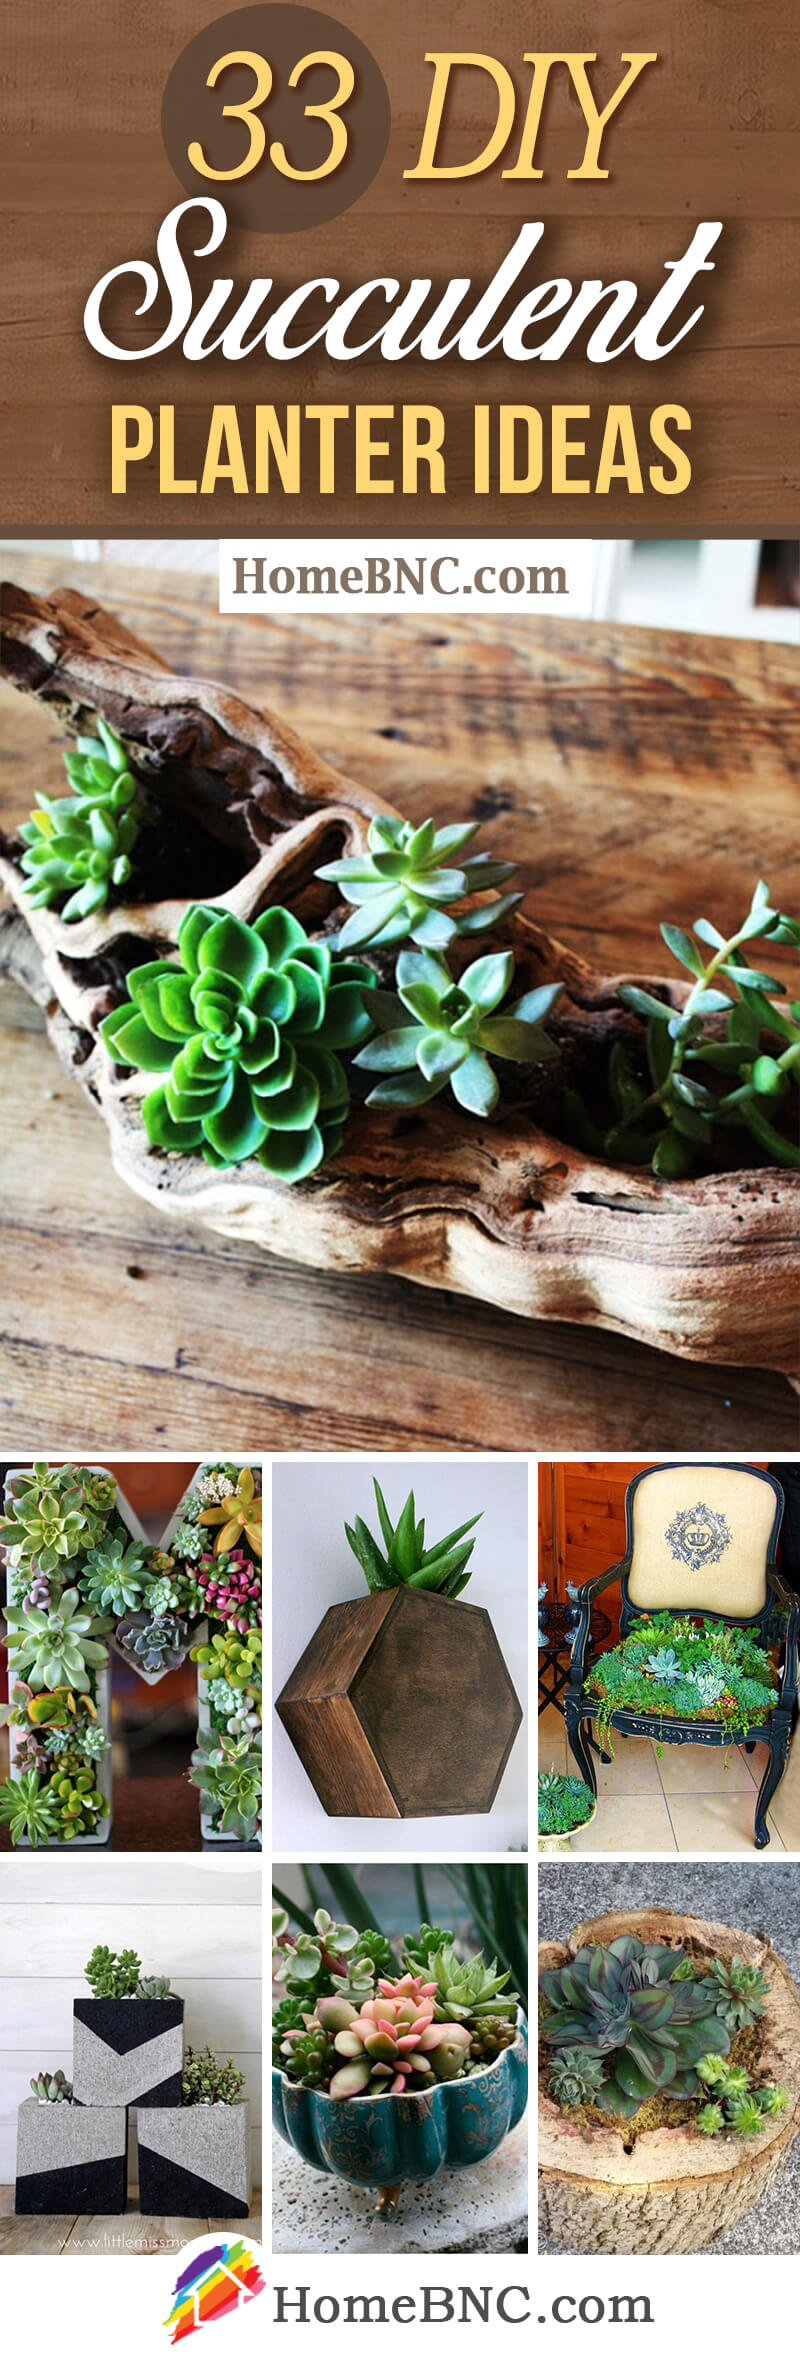 DIY Indoor And Outdoor Succulent Planter Ideas